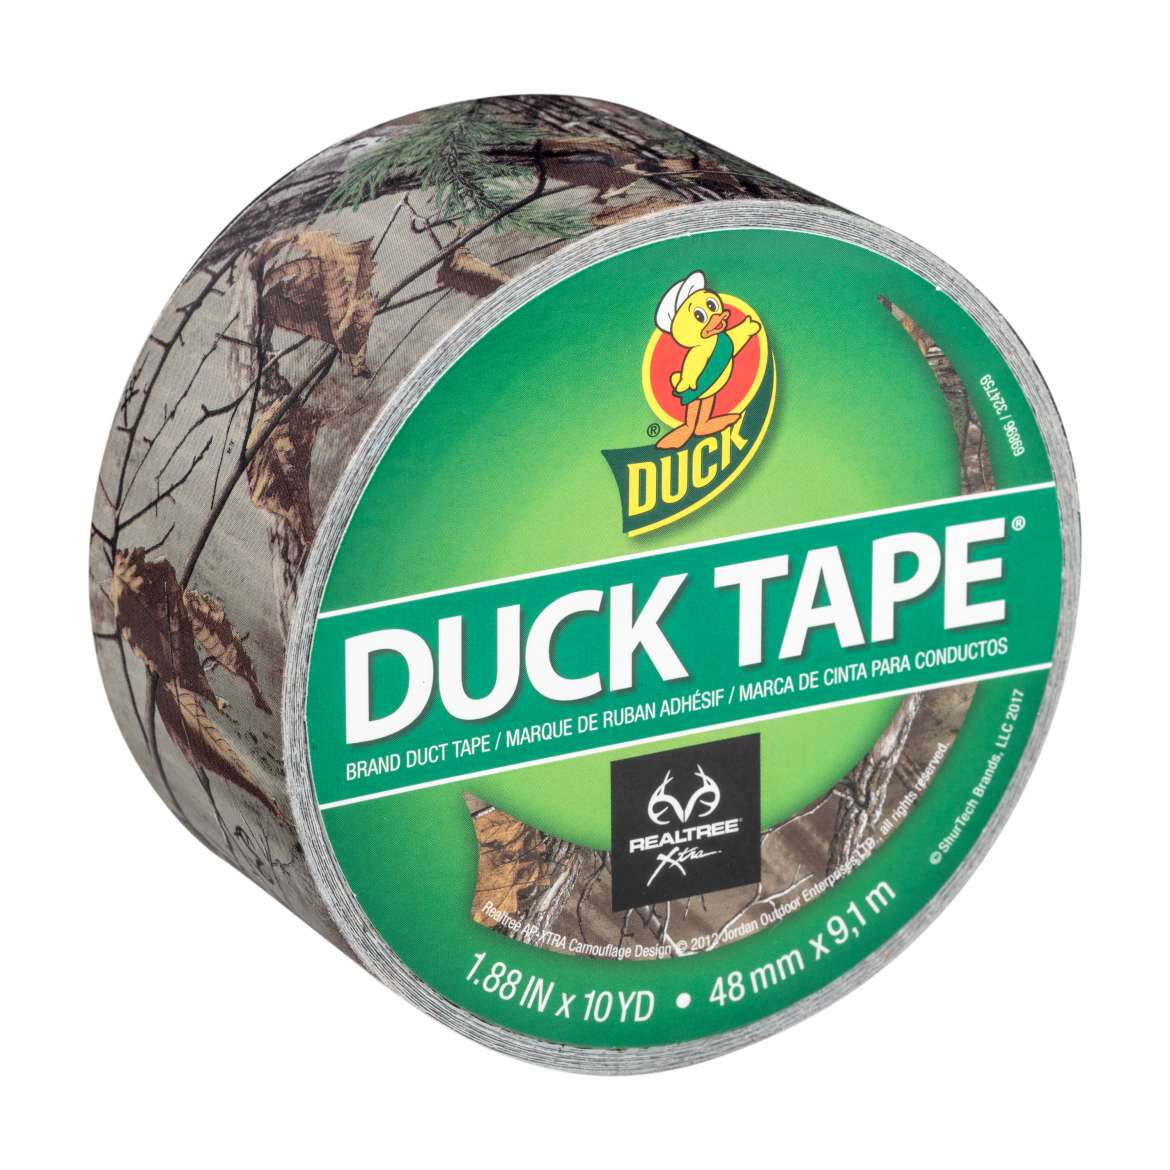 Realtree® Camo Duck Tape® Brand Duct Tape - Xtra, 1.88 in. x 10 yd. Image